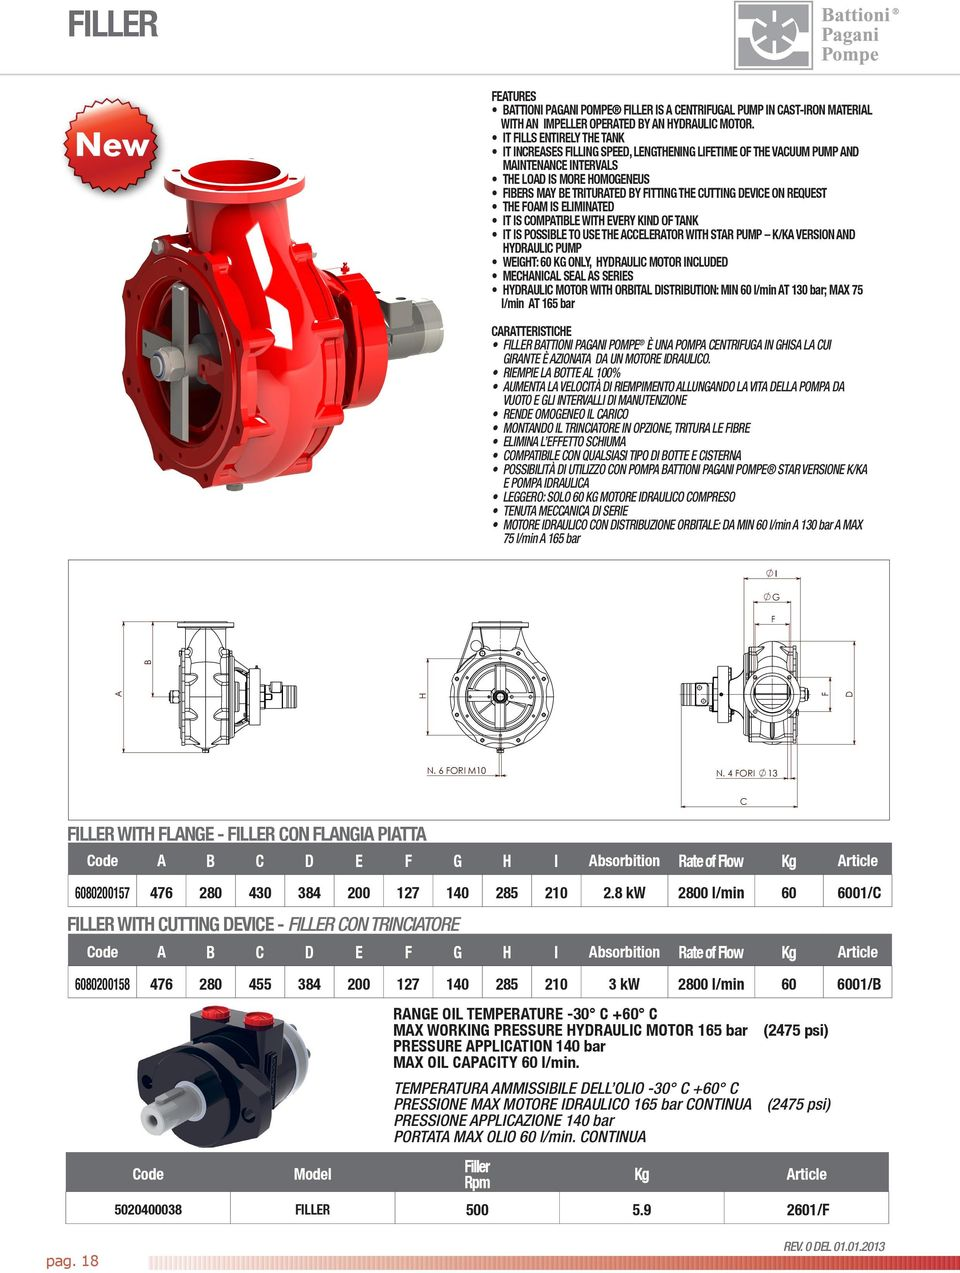 device on request The foam is eliminated It is compatible with every kind of tank It is possible to use the accelerator with STR pump K/K version and Hydraulic pump Weight: 60 Kg only, hydraulic